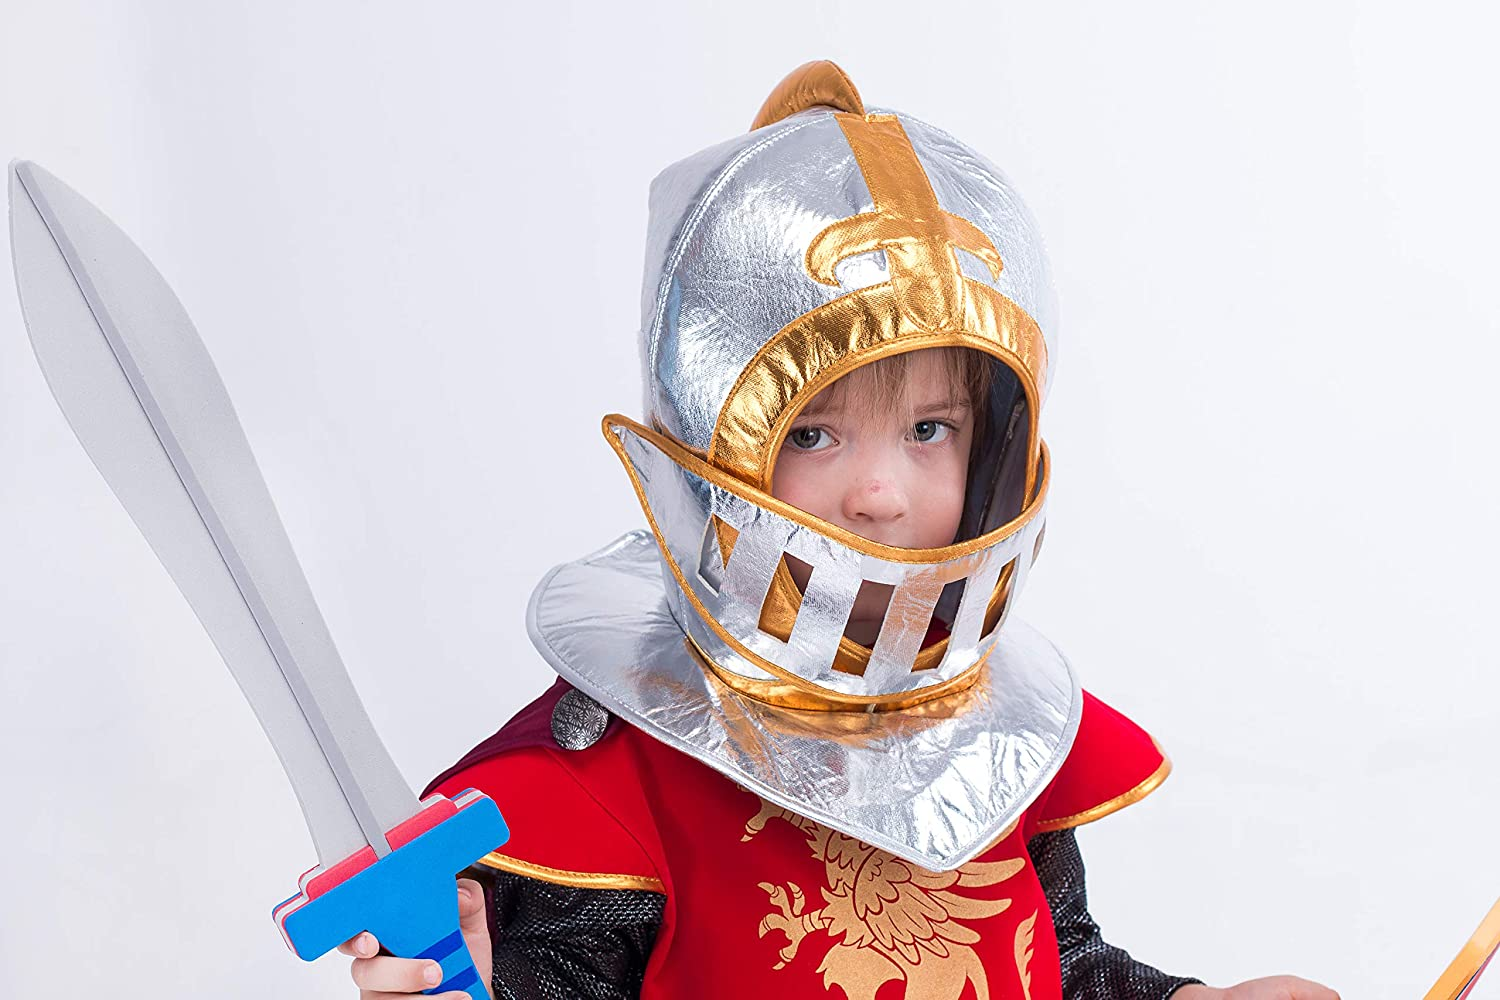 Spooktacular Creations Medieval Knight Costume Deluxe Set for Boys Halloween Party Dress Up,Role Play and Cosplay